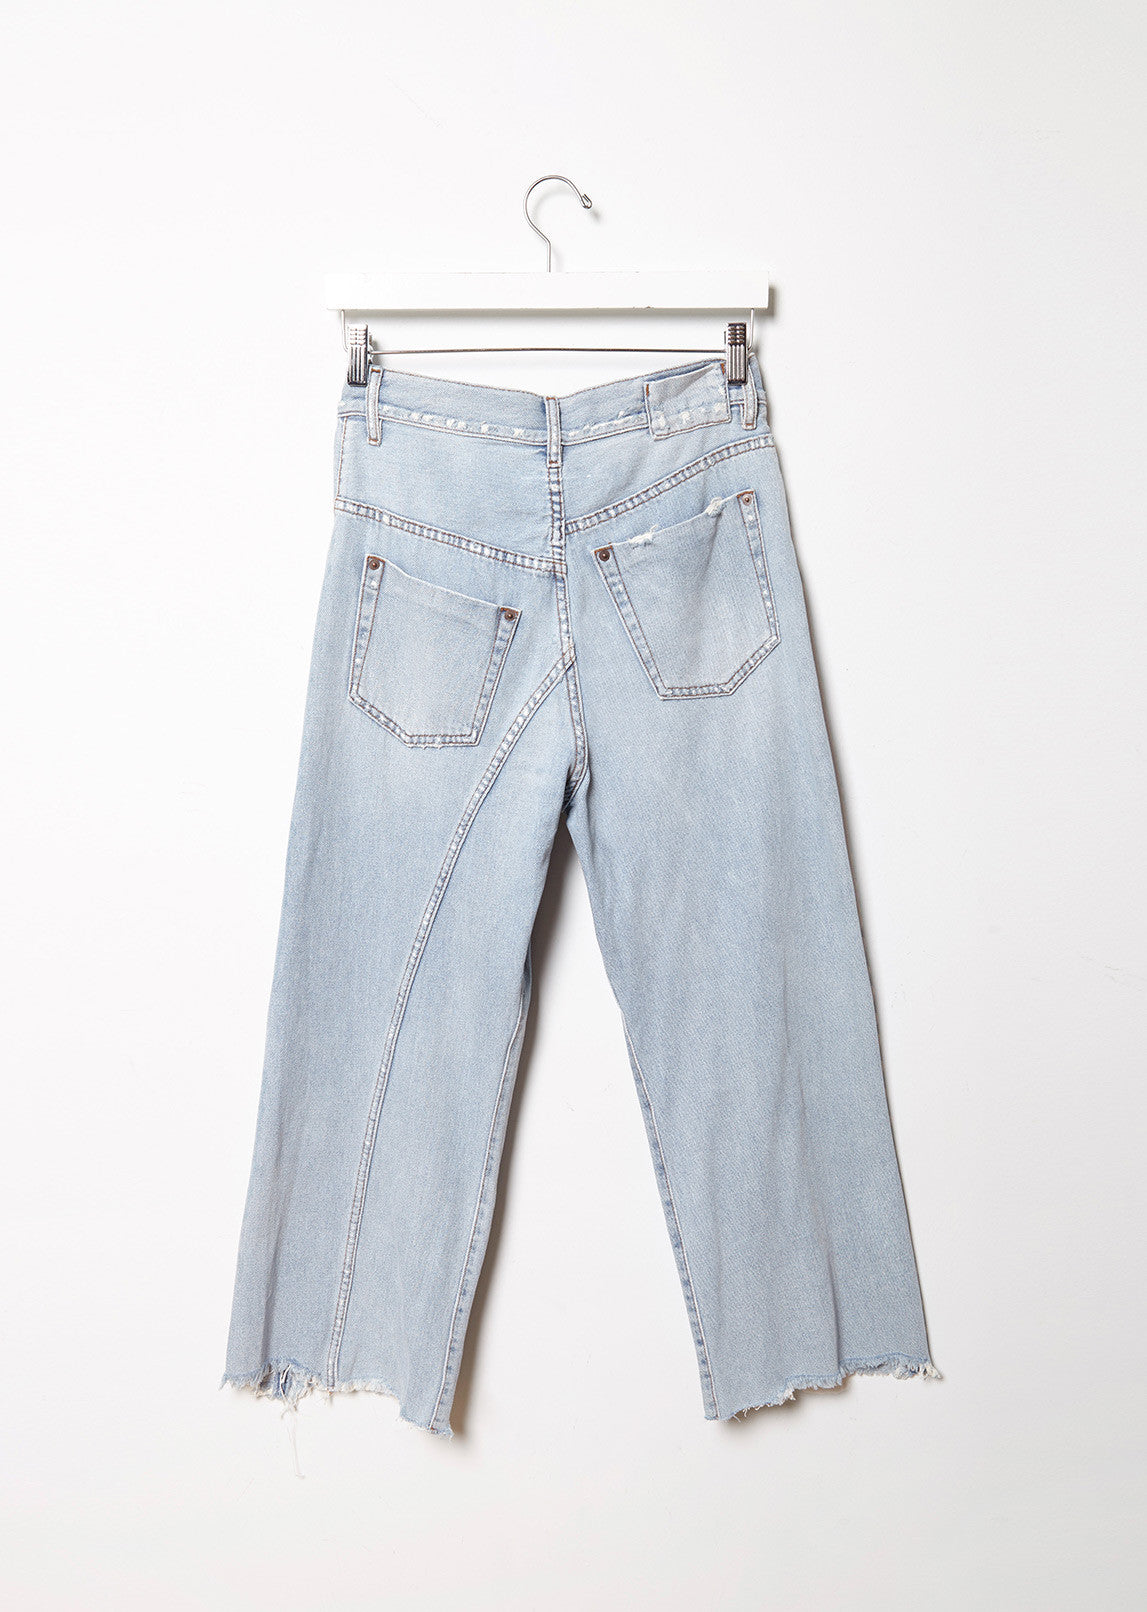 Bleached Destroyed Jeans